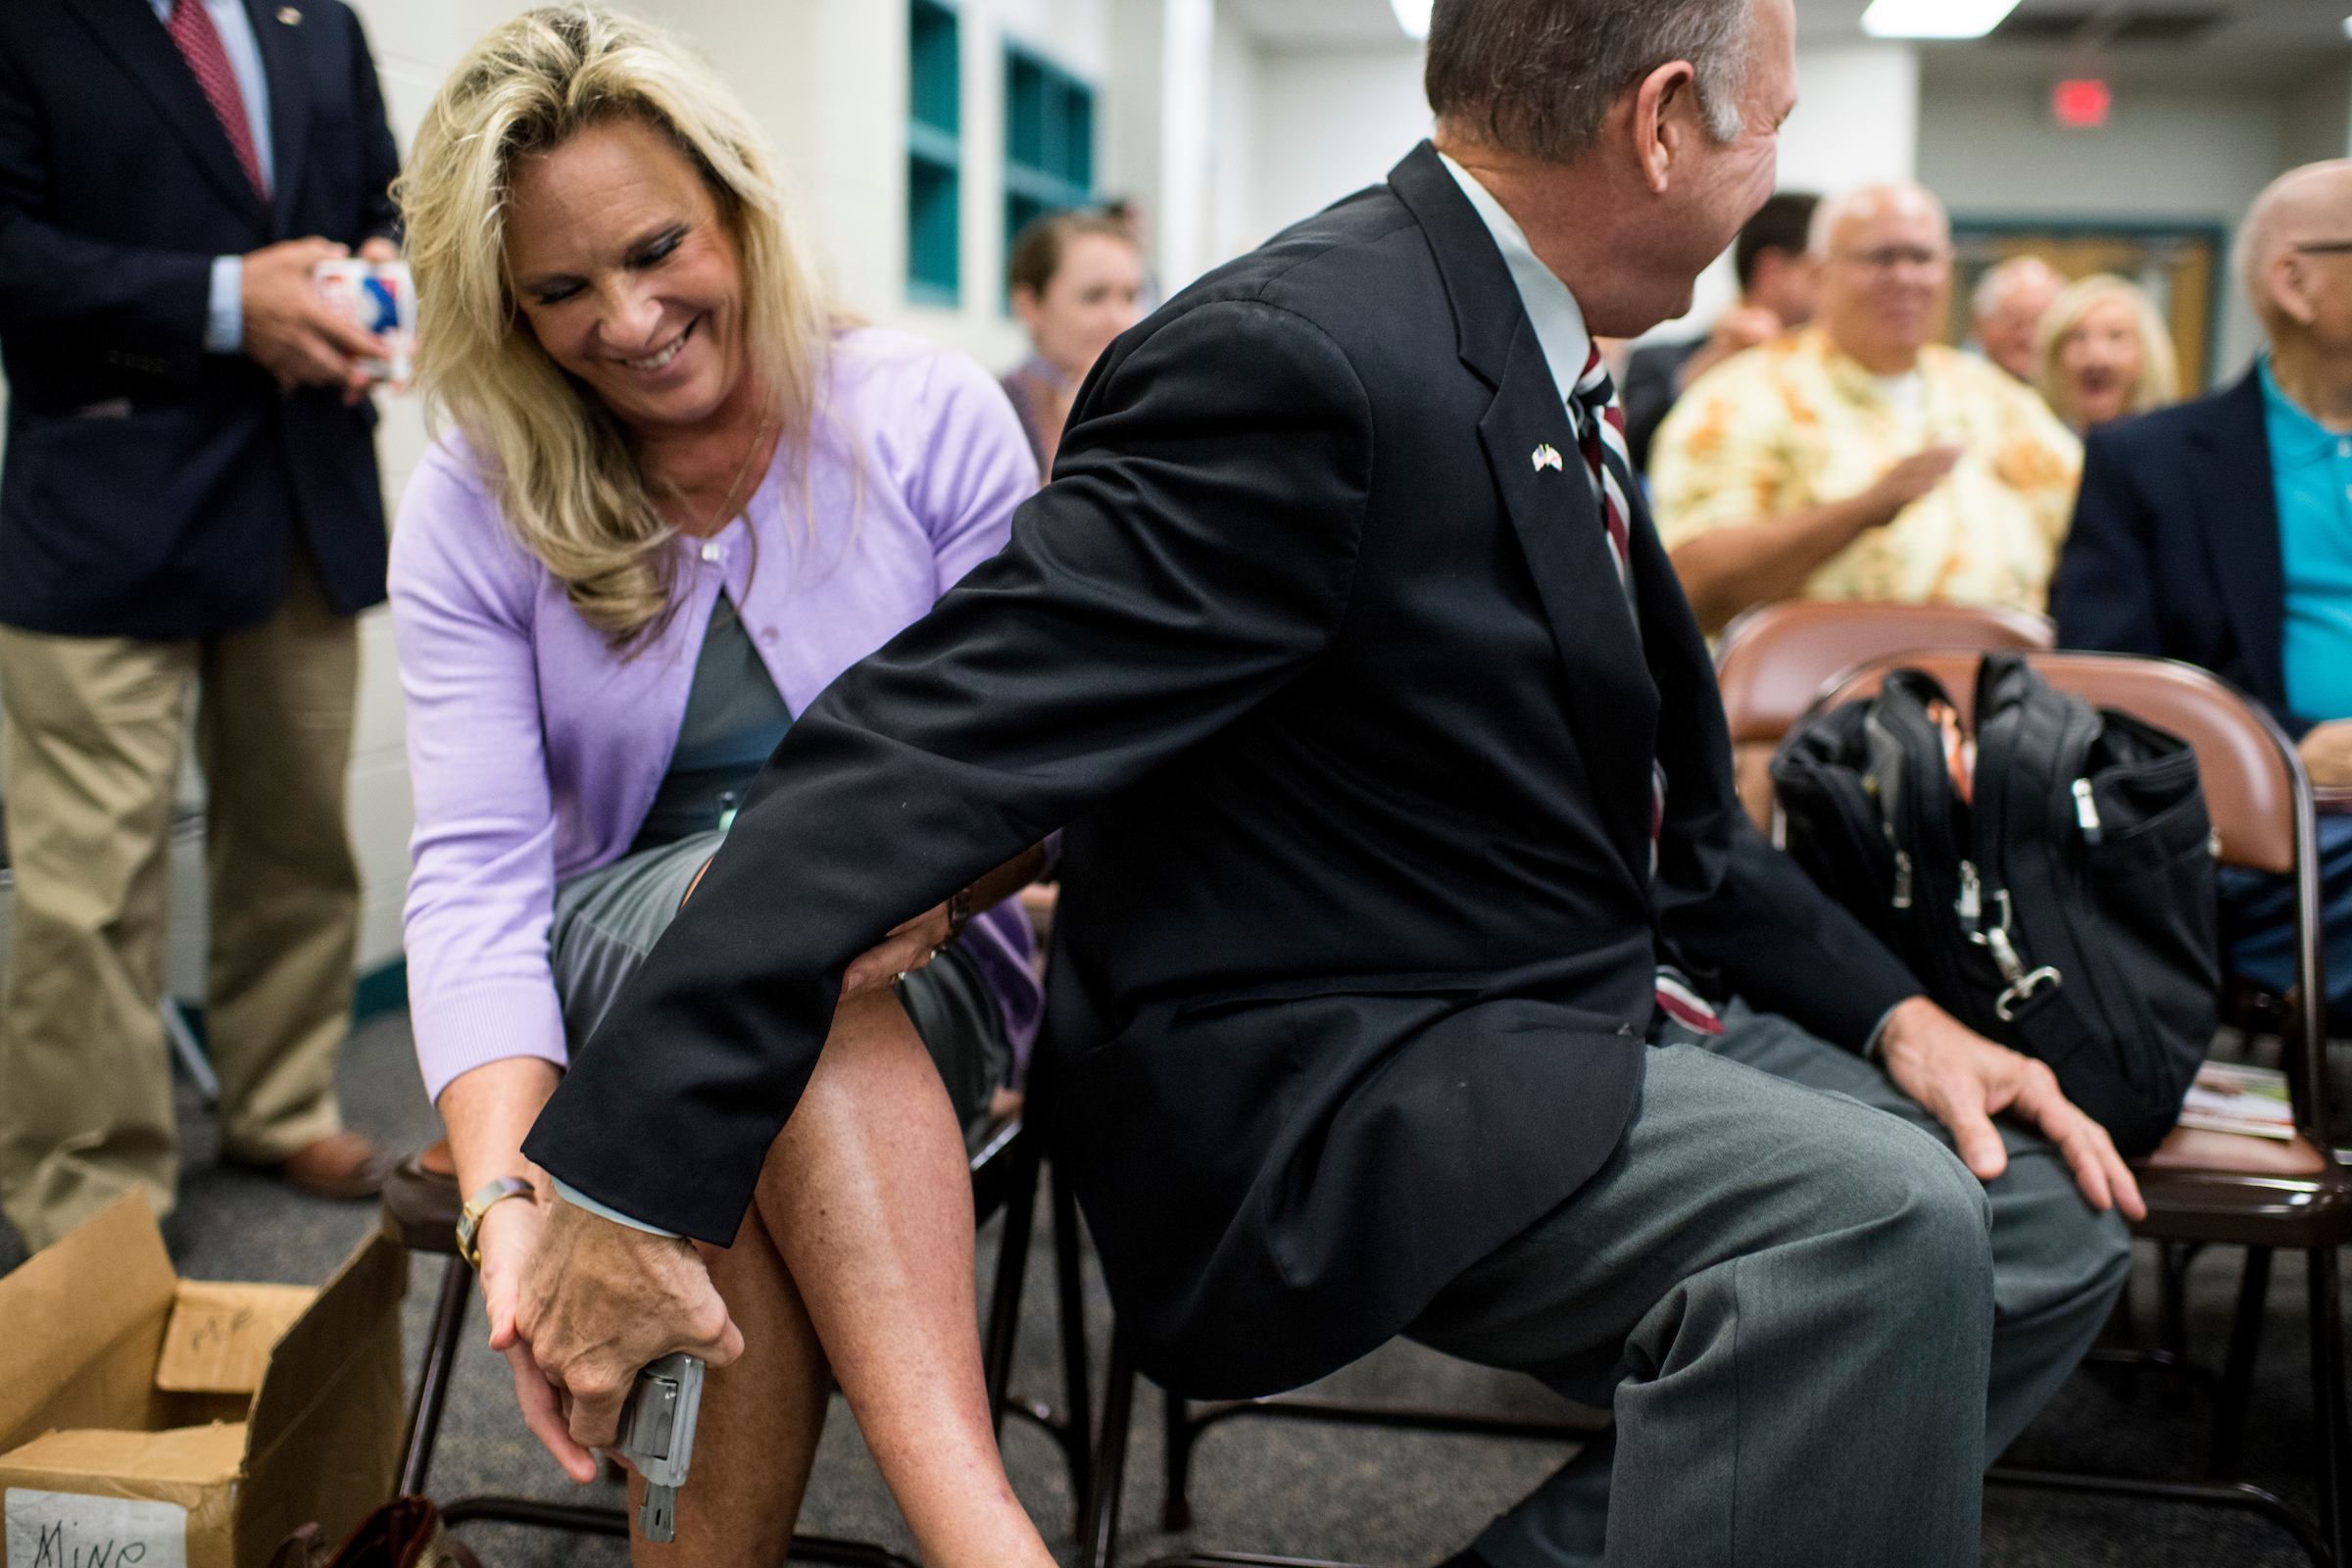 GOP candidate for U.S. Senate Roy Moore returns his wife's hand gun to her after displaying it as a way to show support for the 2nd amendment after candidates were asked about their views on gun rights during a candidates' forum in Valley, Ala., on Thursday, Aug. 3, 2017. The former Chief Justice of the Alabama Supreme Court is running tin the special election to fill the seat vacated by Attorney General Jeff Sessions. (Bill Clark/CQ Roll Call)